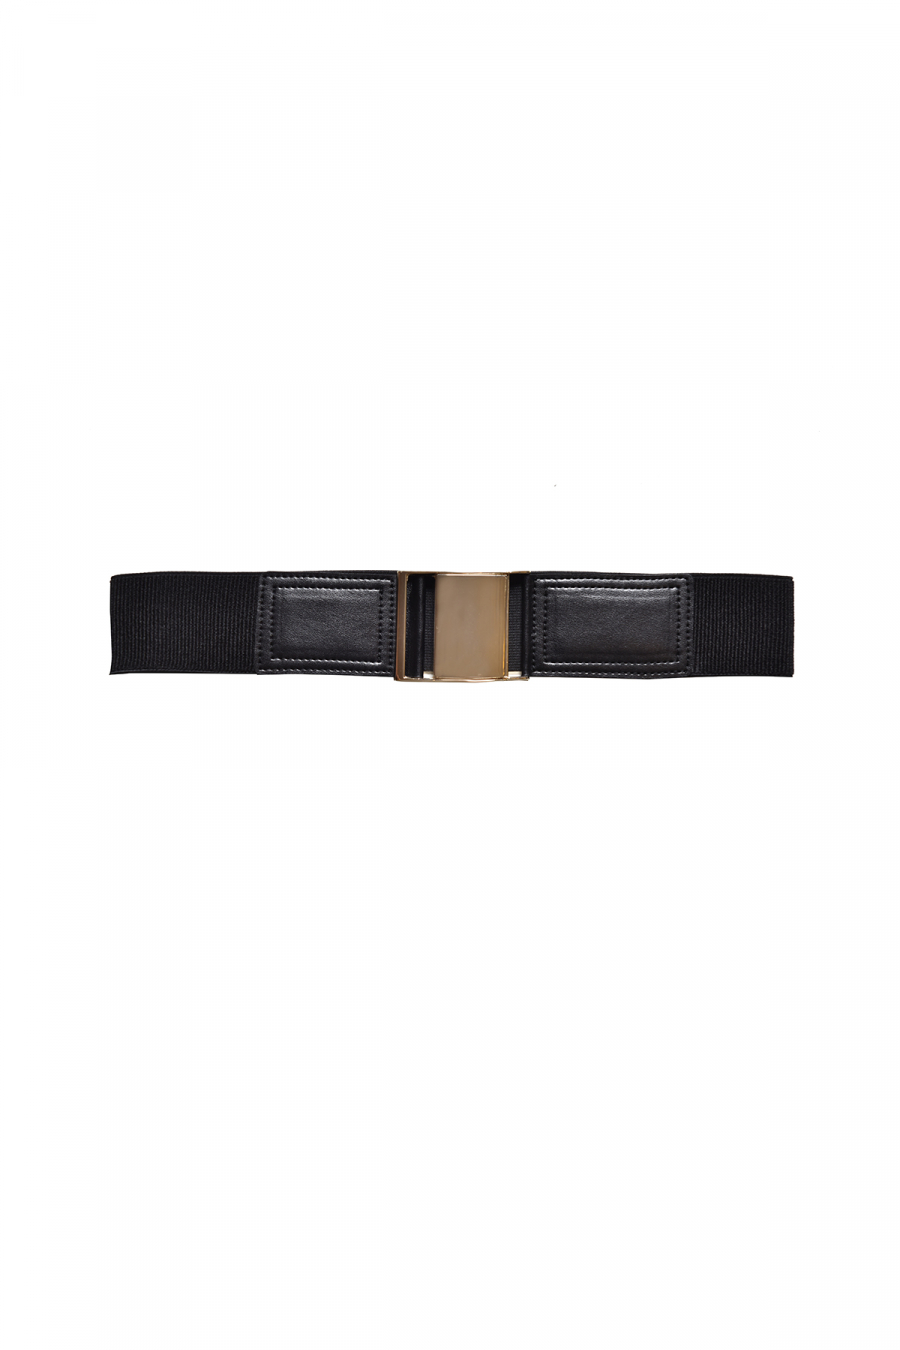 MILITARY CLIP BELT BLACK